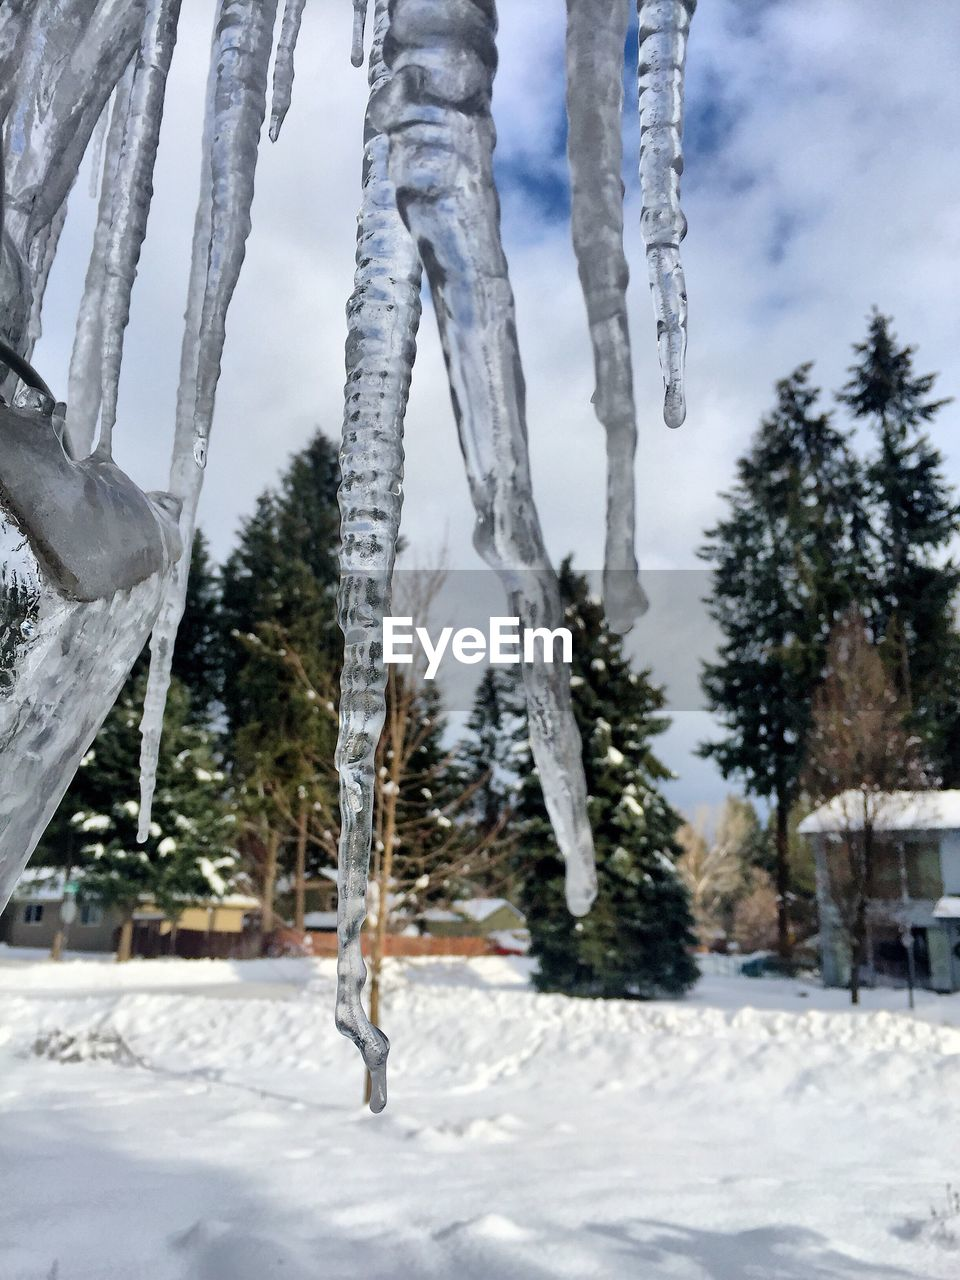 winter, snow, cold temperature, weather, frozen, nature, cold, tree, icicle, ice, day, beauty in nature, outdoors, landscape, no people, scenics, sky, close-up